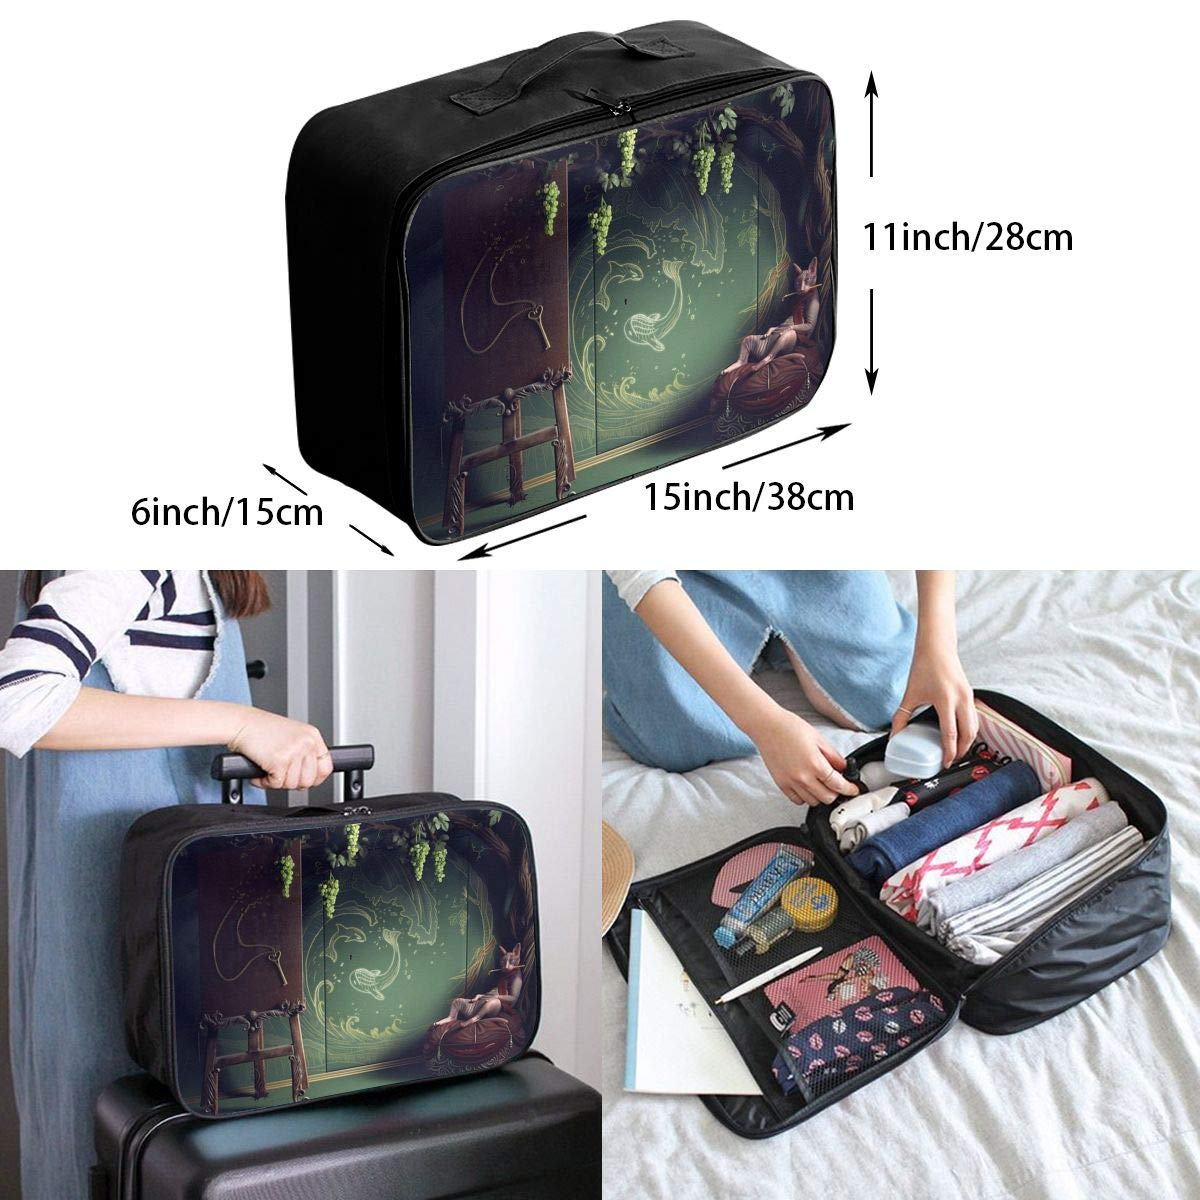 Travel Luggage Duffle Bag Lightweight Portable Handbag Fantasy Animals Print Large Capacity Waterproof Foldable Storage Tote